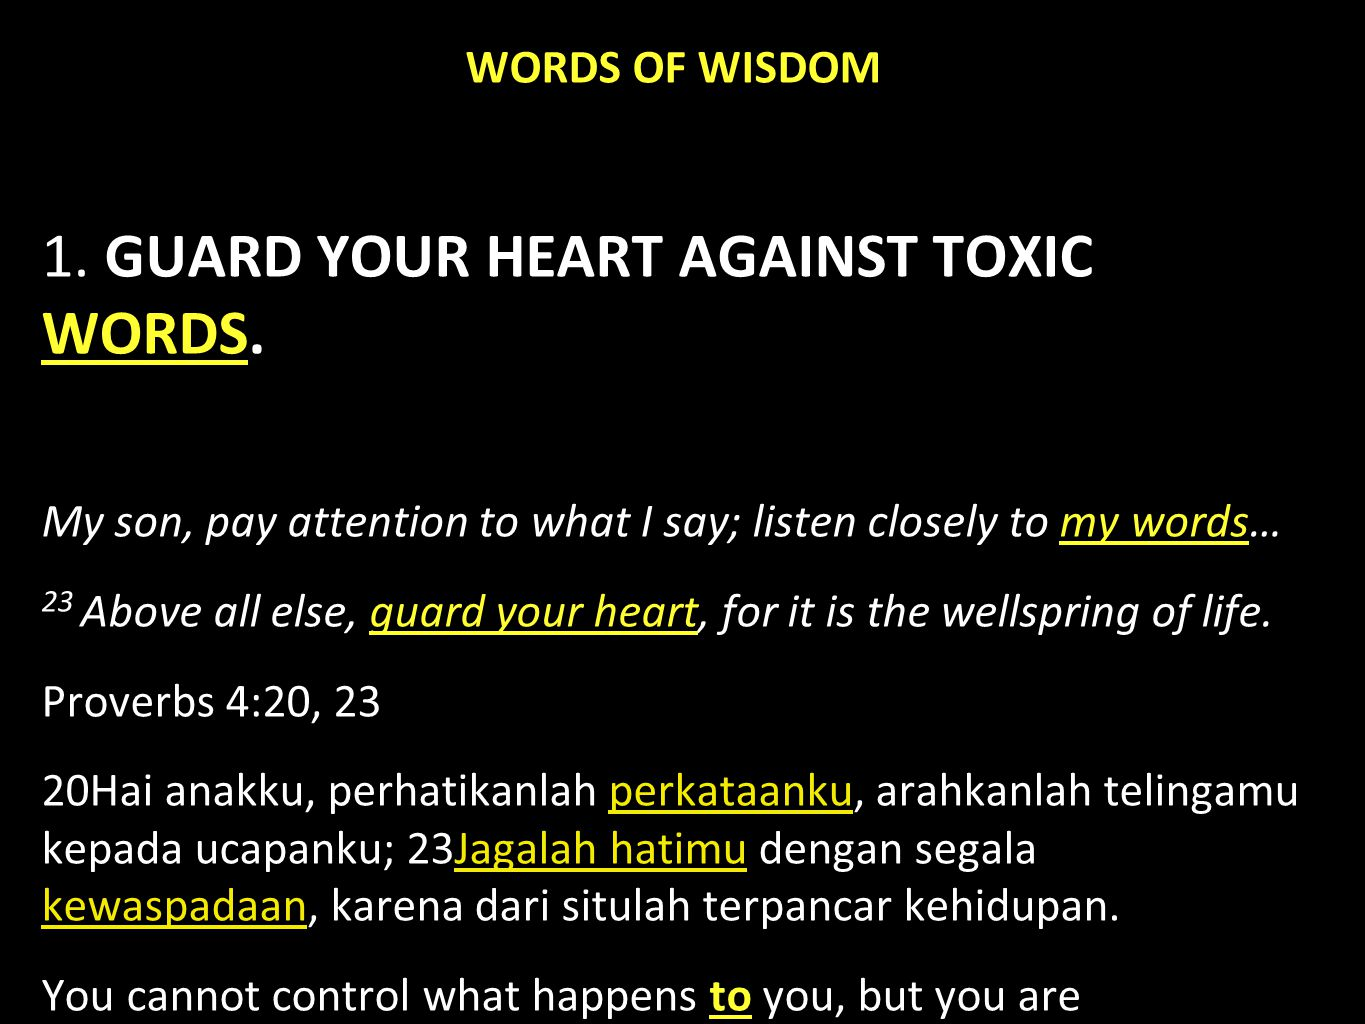 WORDS OF WISDOM 1. GUARD YOUR HEART AGAINST TOXIC WORDS.